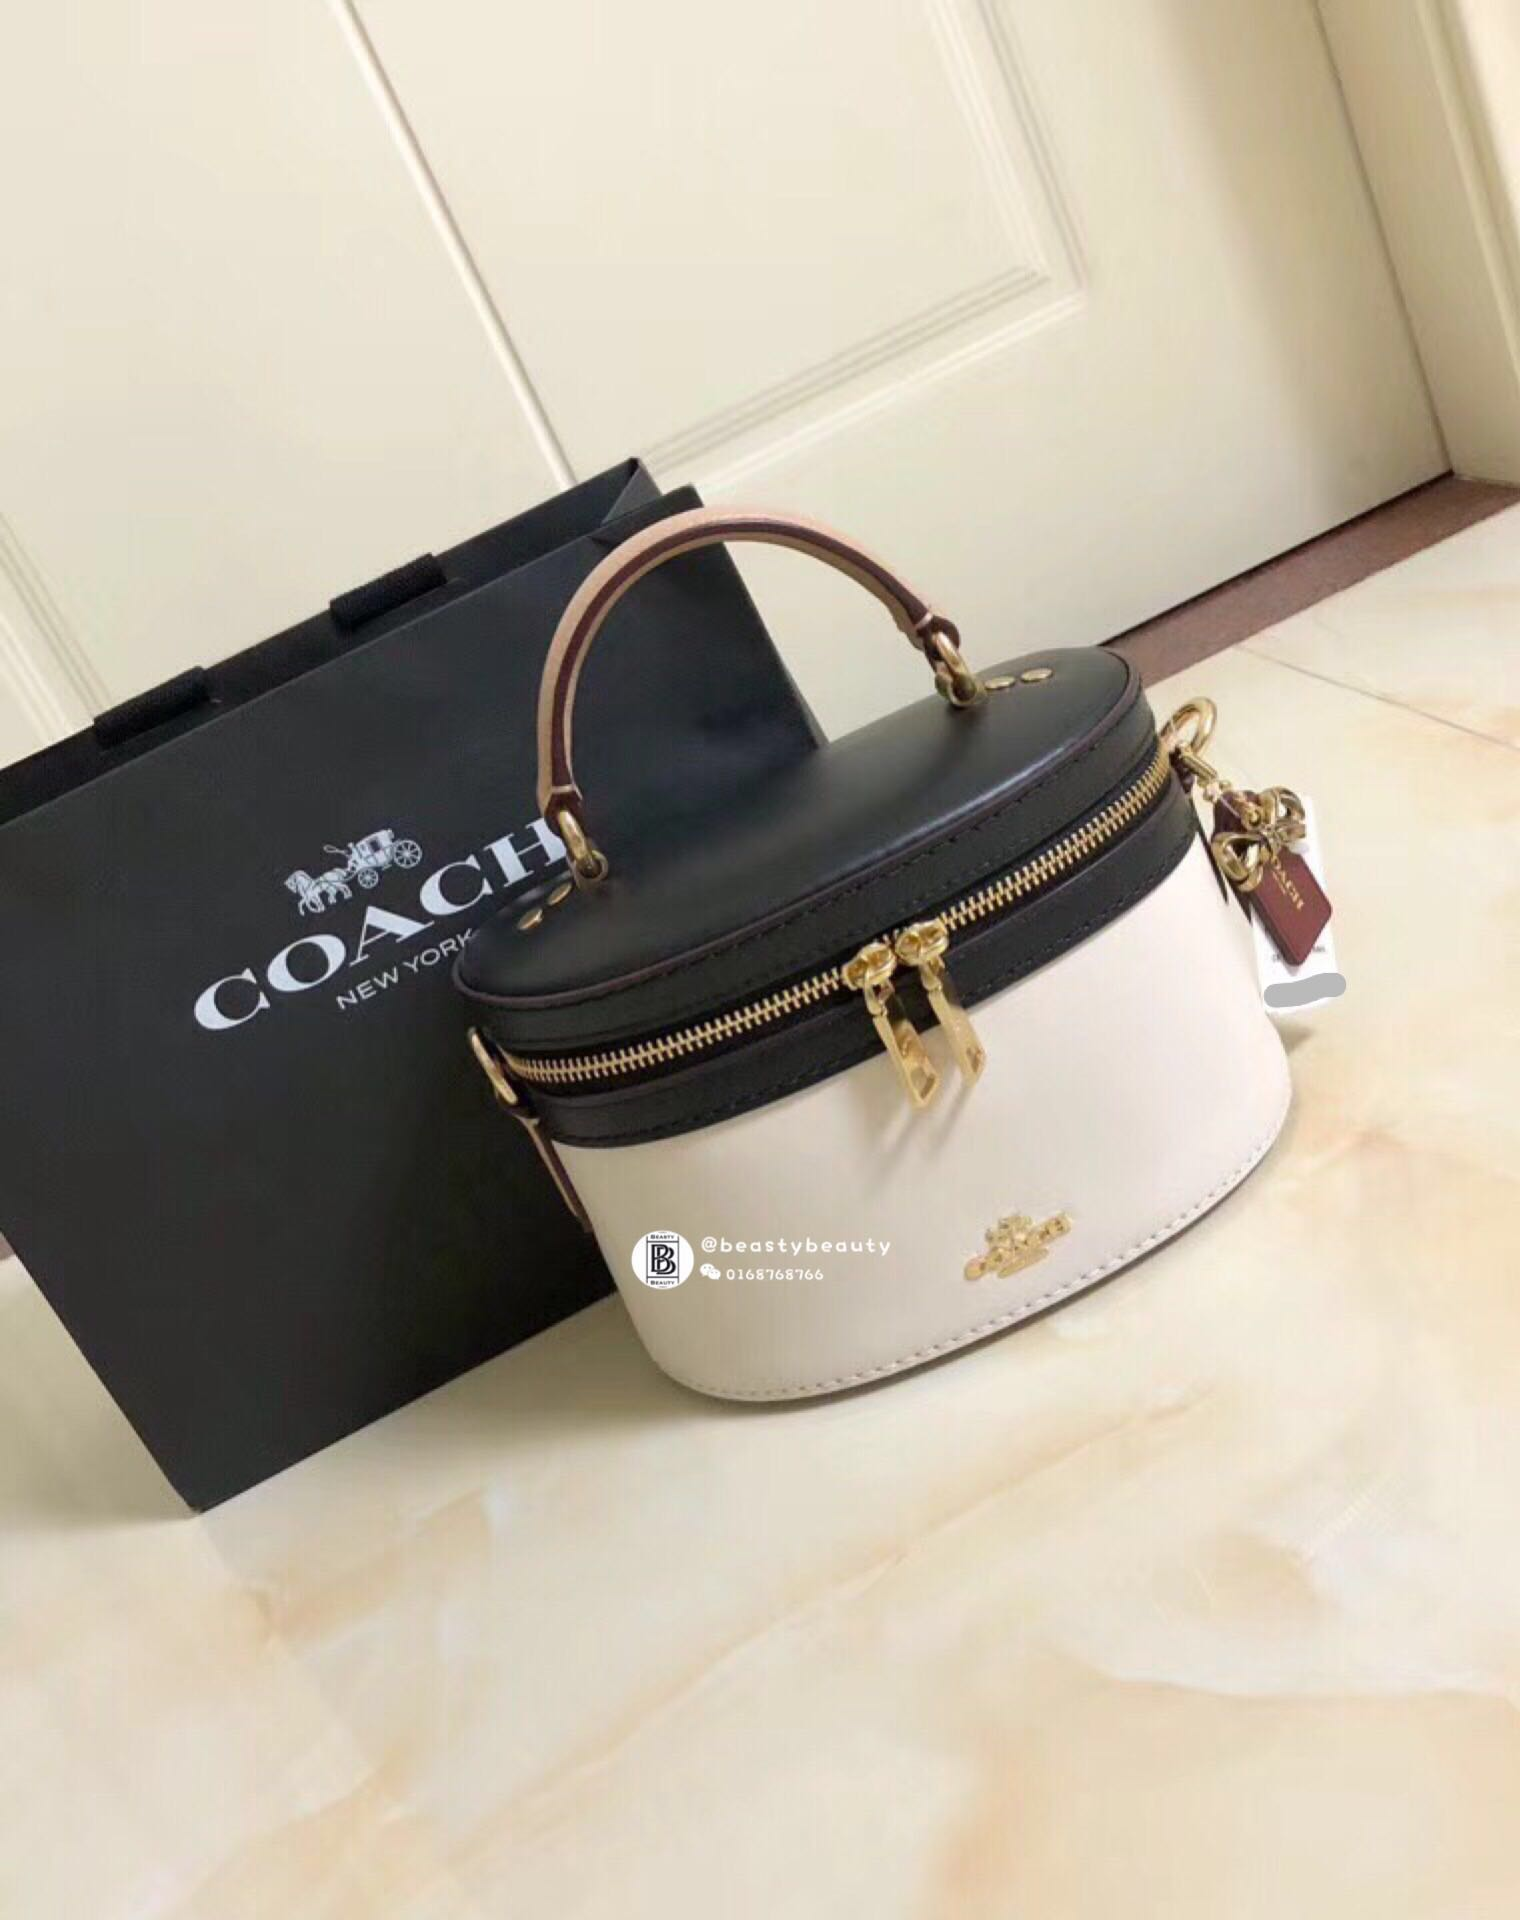 0c17f821e9 Coach Selena Trail Bag in Colorblock